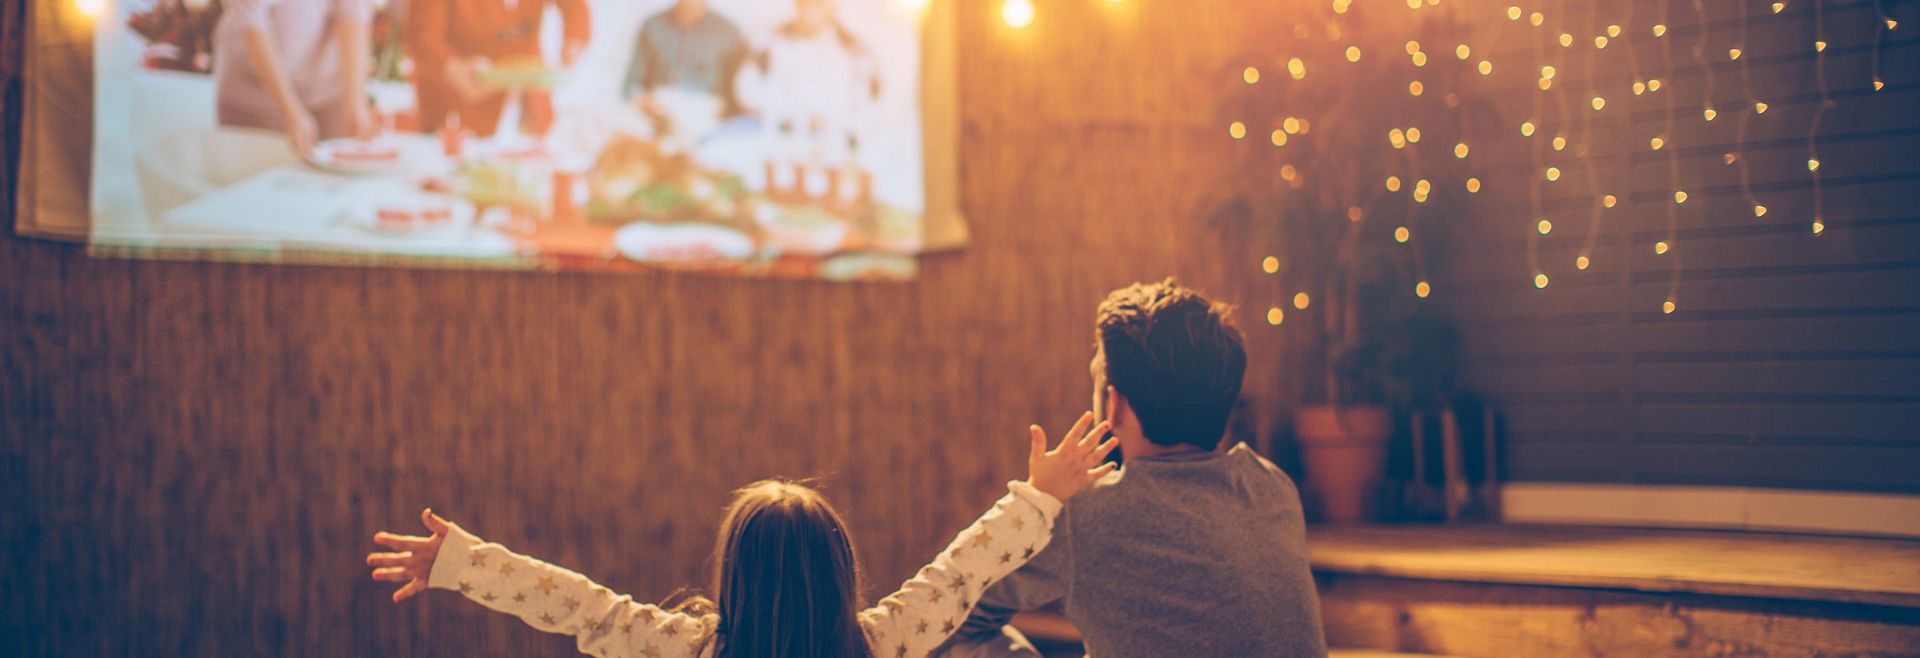 Summer Outdoor Movie Night Getty Images